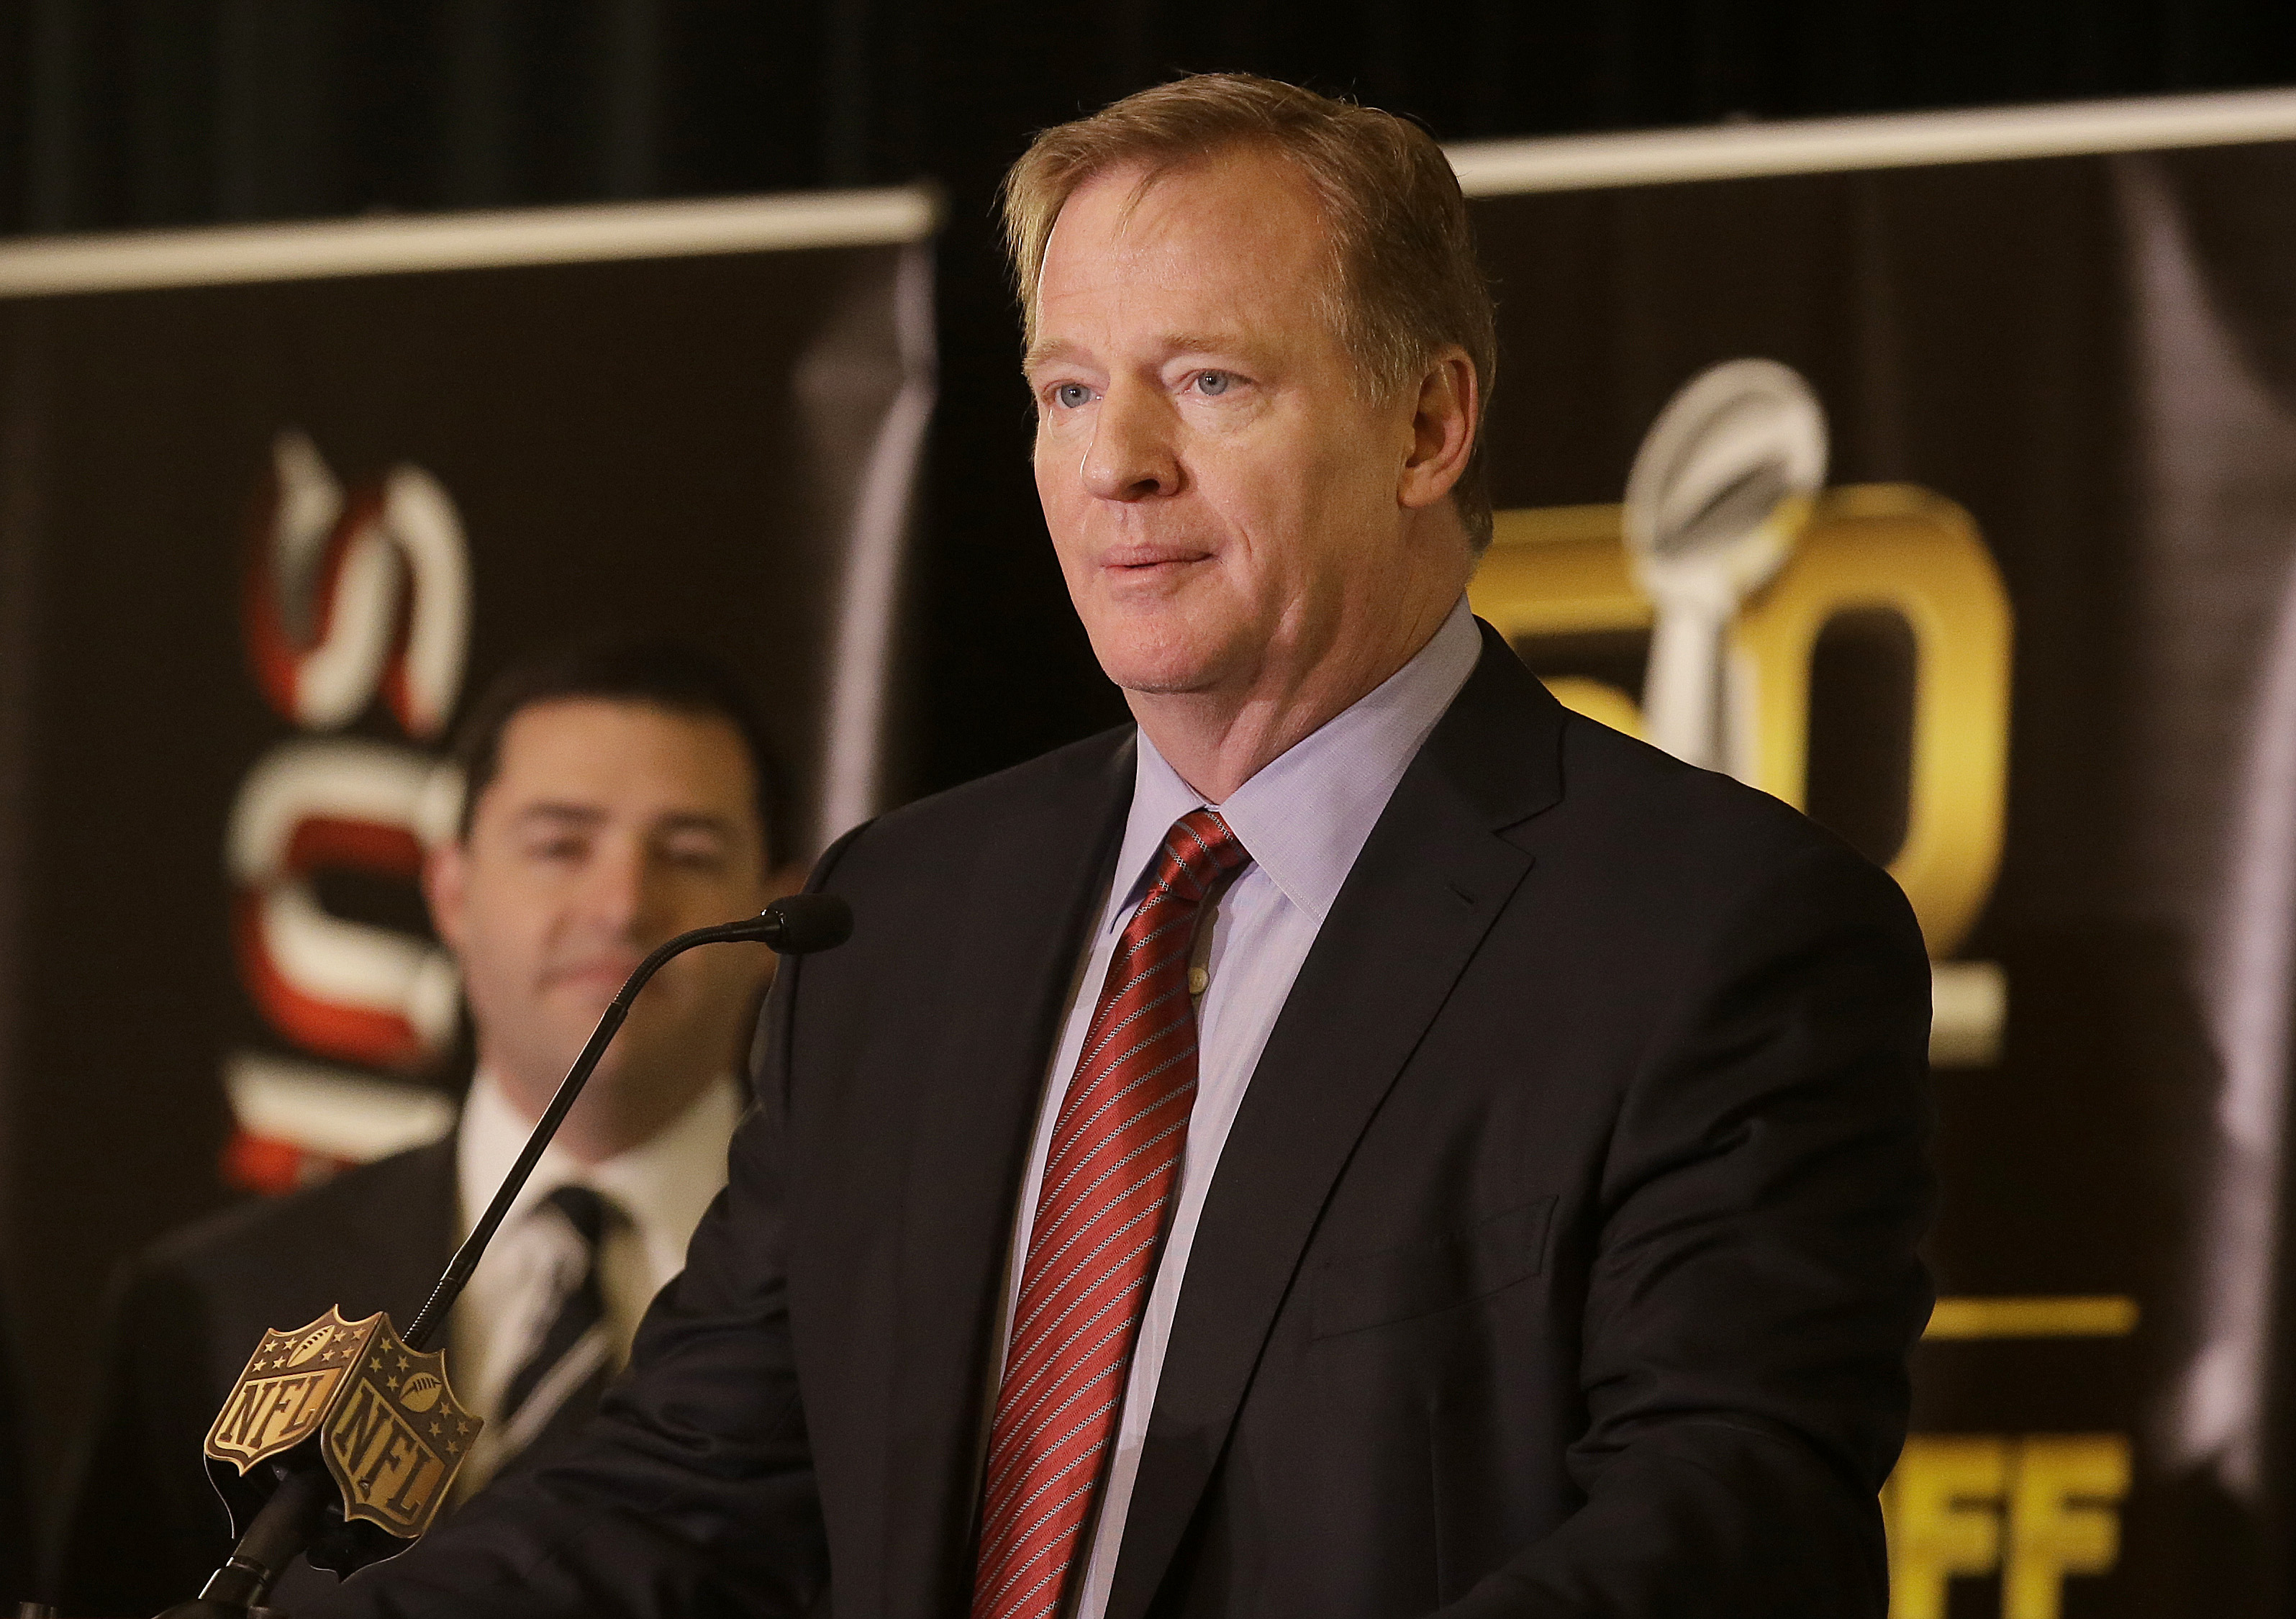 NFL Commissioner Roger Goodell speaks at a news conference in San Francisco, Monday, Feb. 8, 2016. (AP Photo/Jeff Chiu)